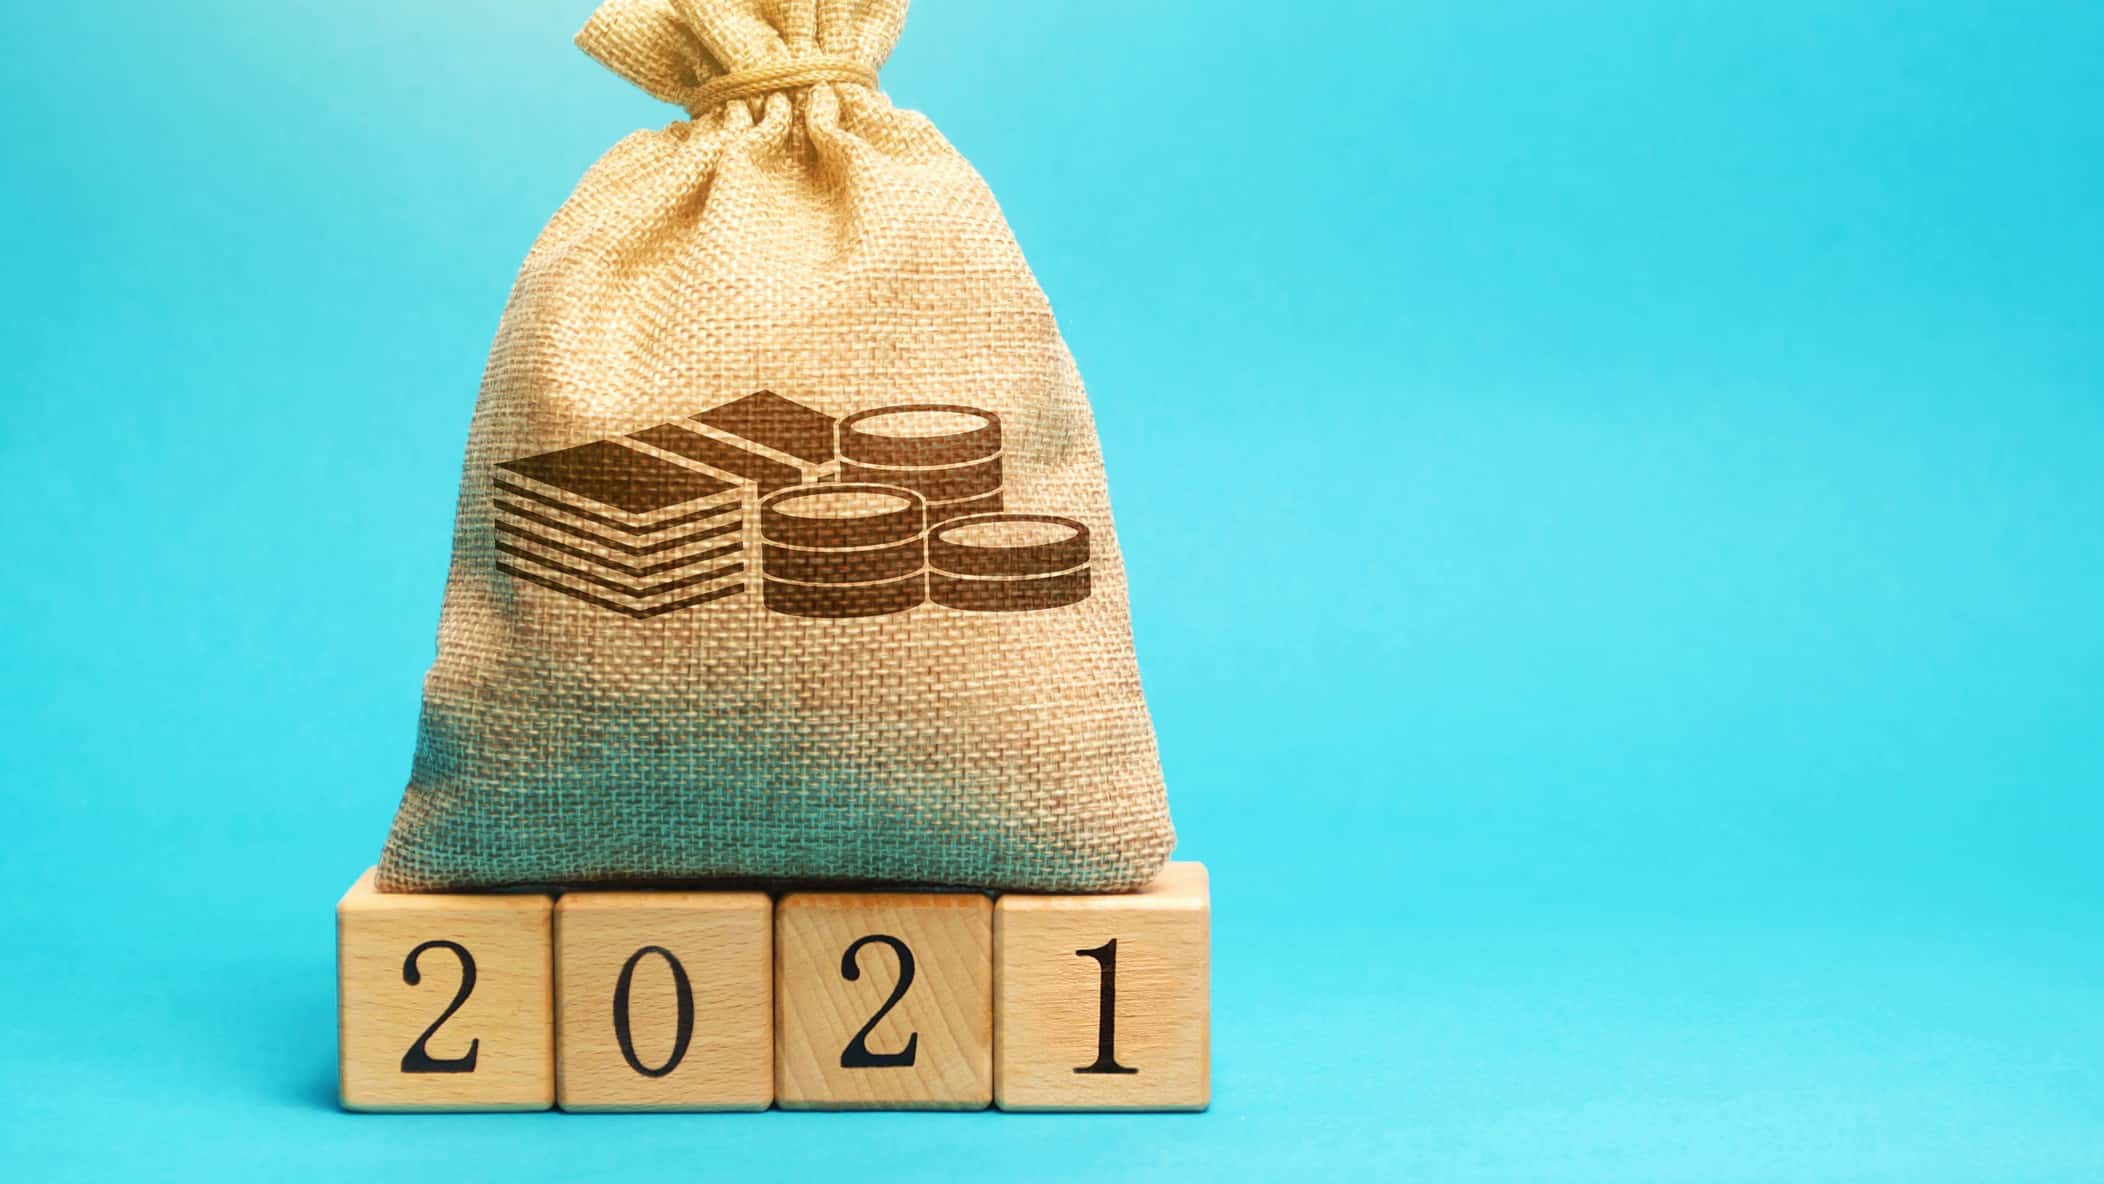 Bag of money sitting on top of wooden blocks spelling out 2021